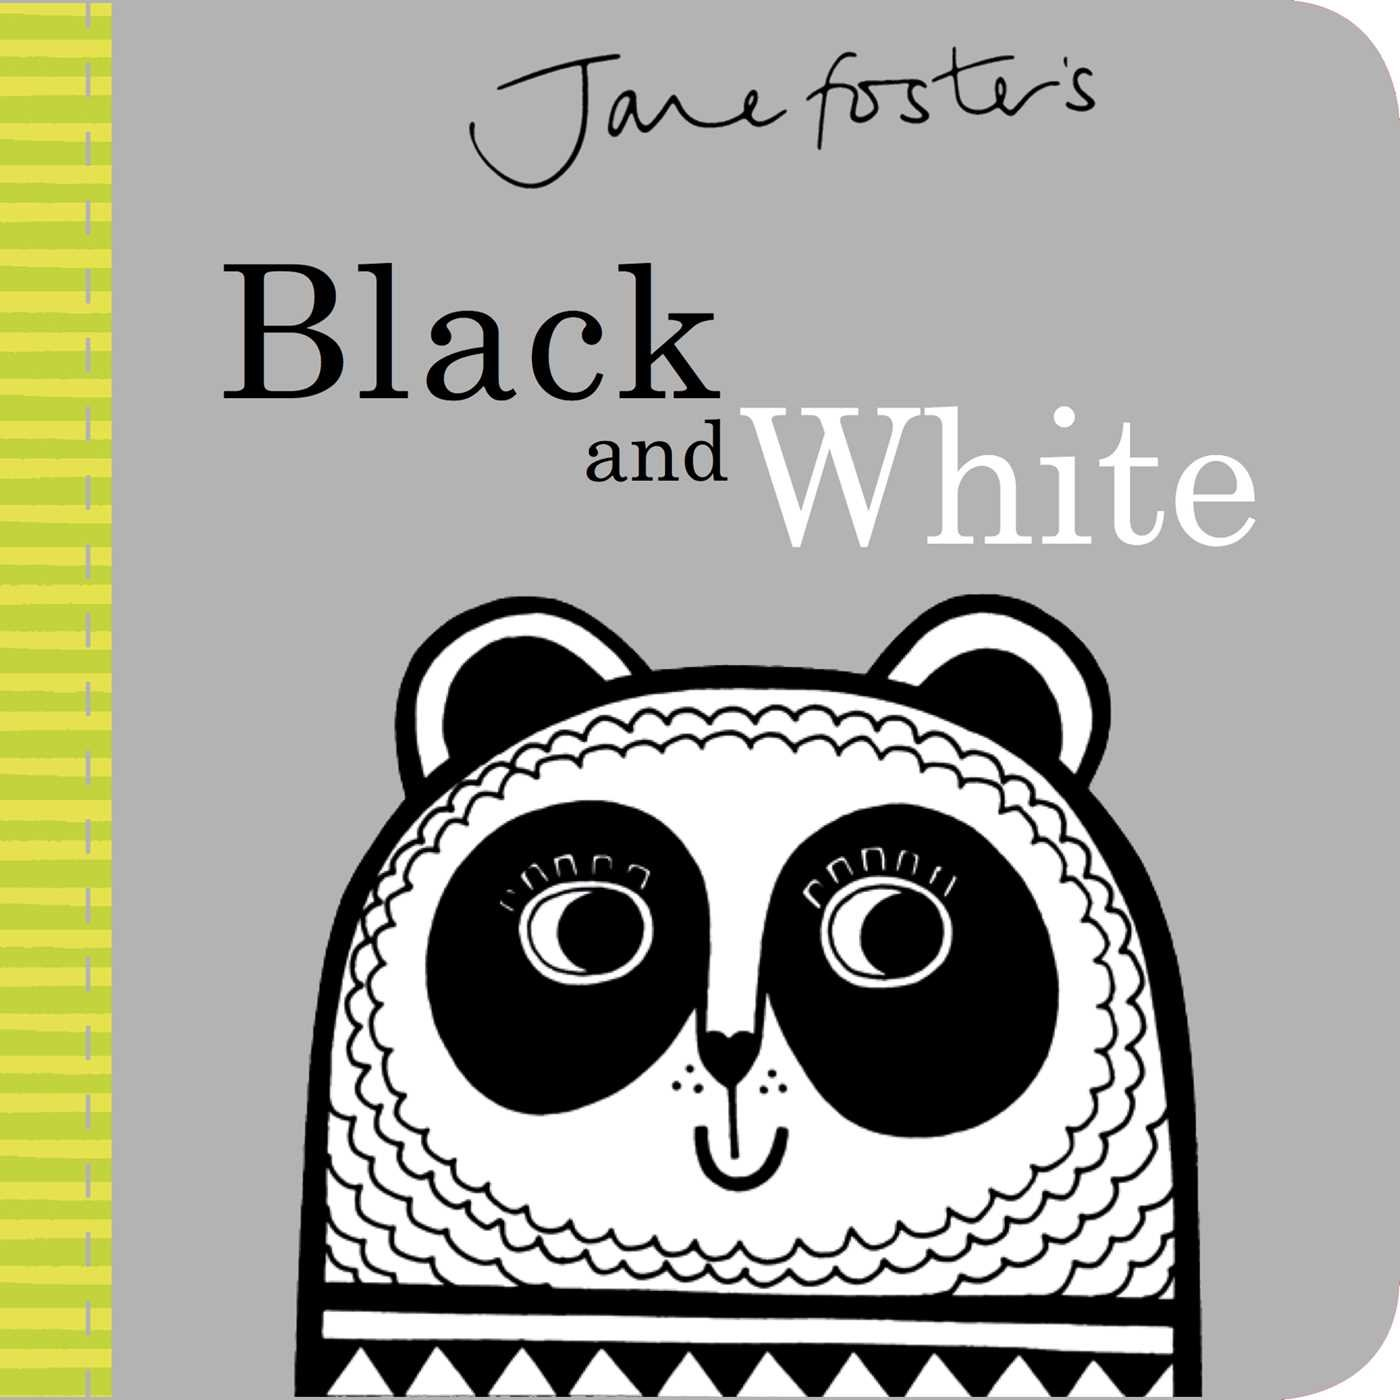 Jane fosters black and white jane foster 9781499802559 amazon com books